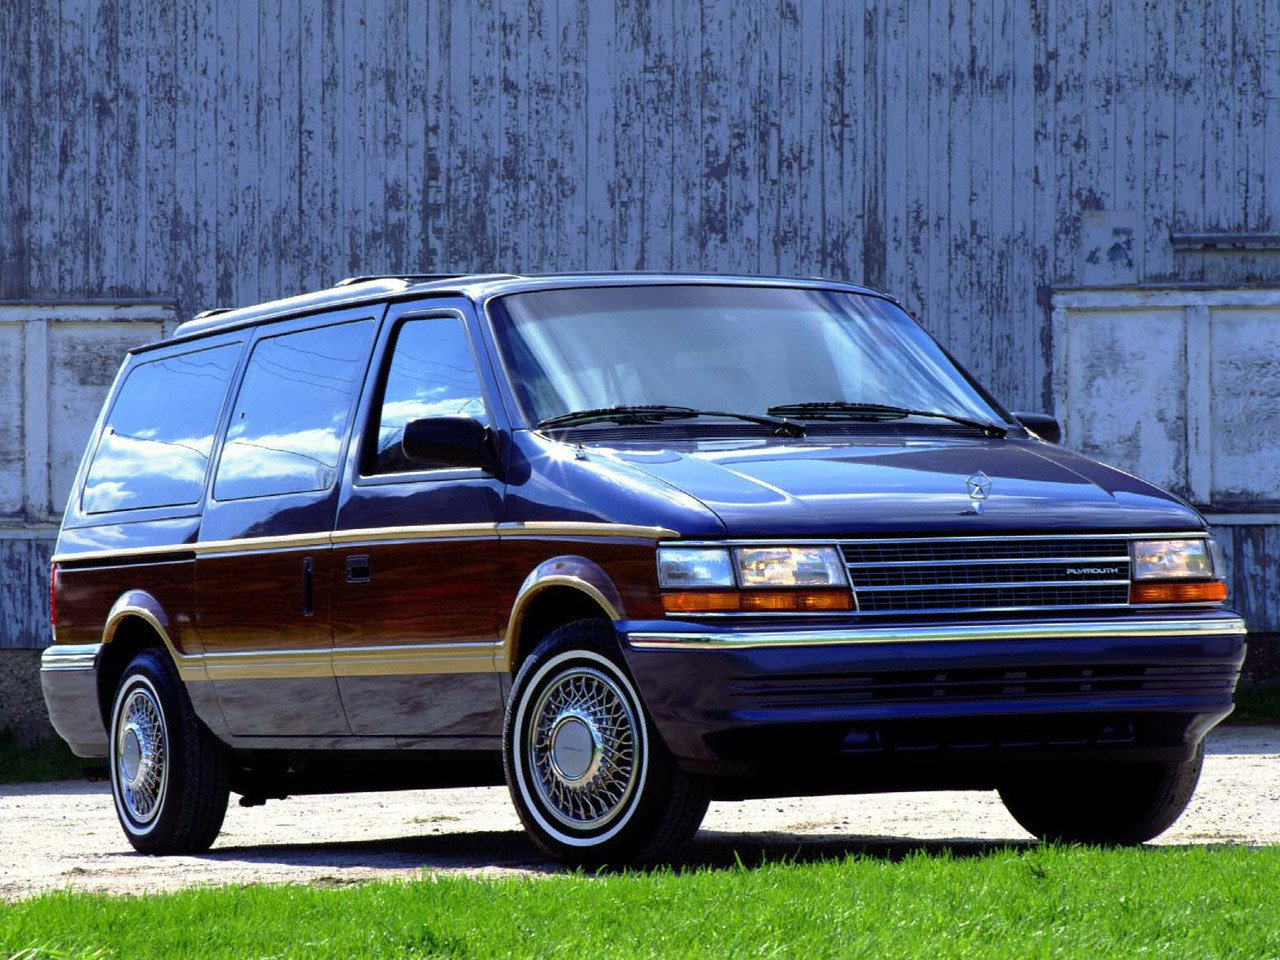 97 Plymouth Grand Voyager Fuse Box Wiring Library Dodge Caravan 2 4l Engine Diagram Ii 1997 Pics 14